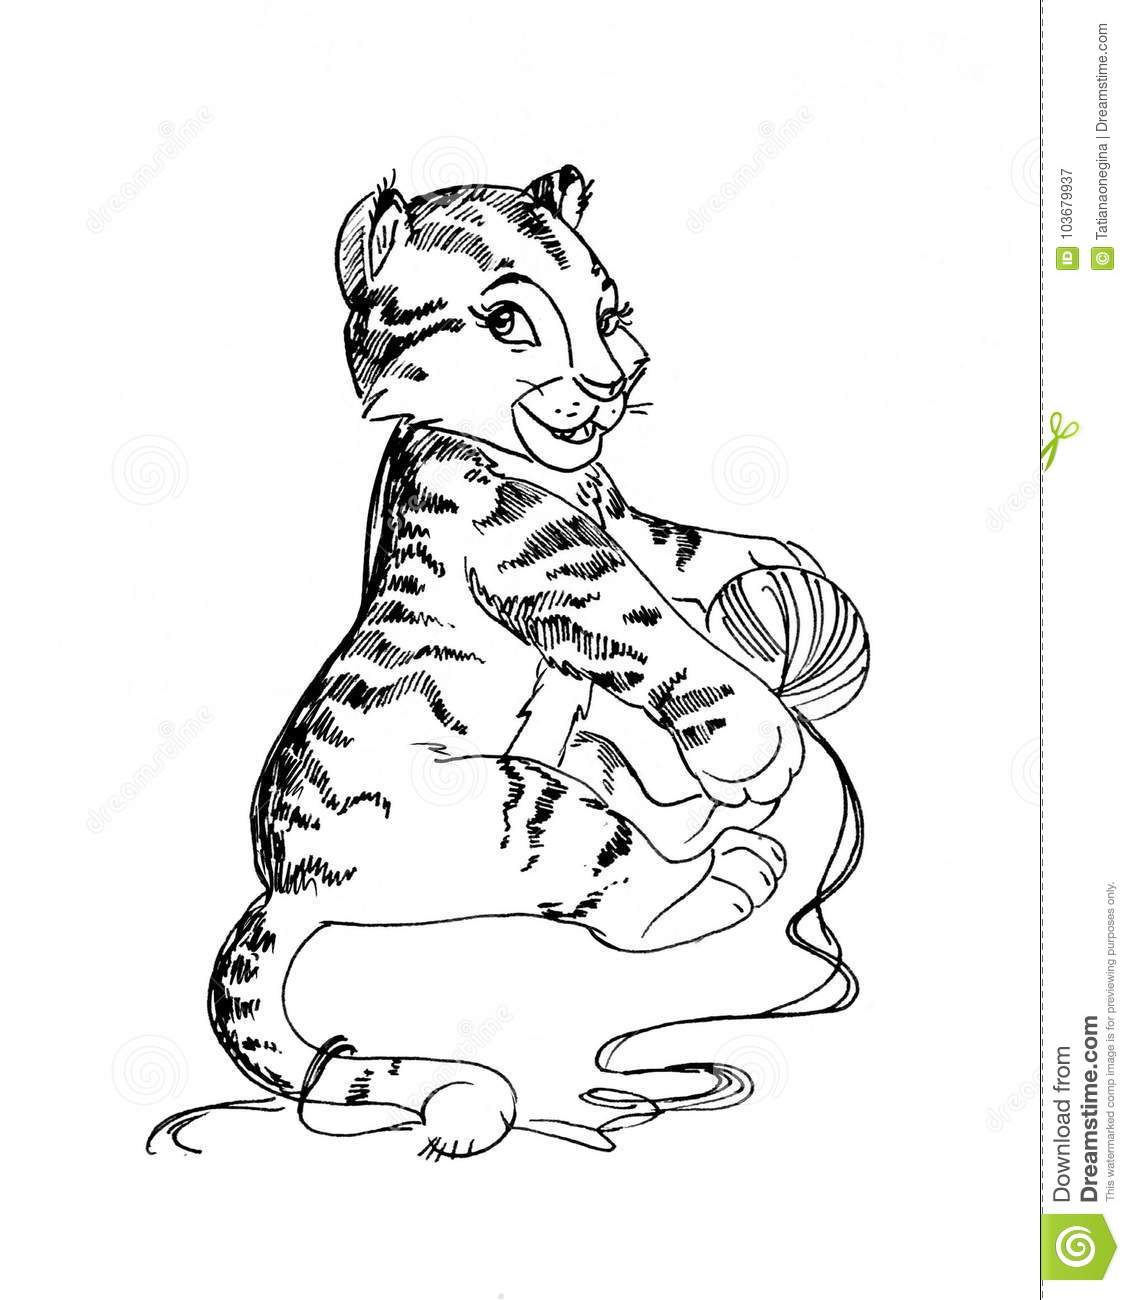 Cartoon graphic artwork of little tiger cub playing with ball of yarn